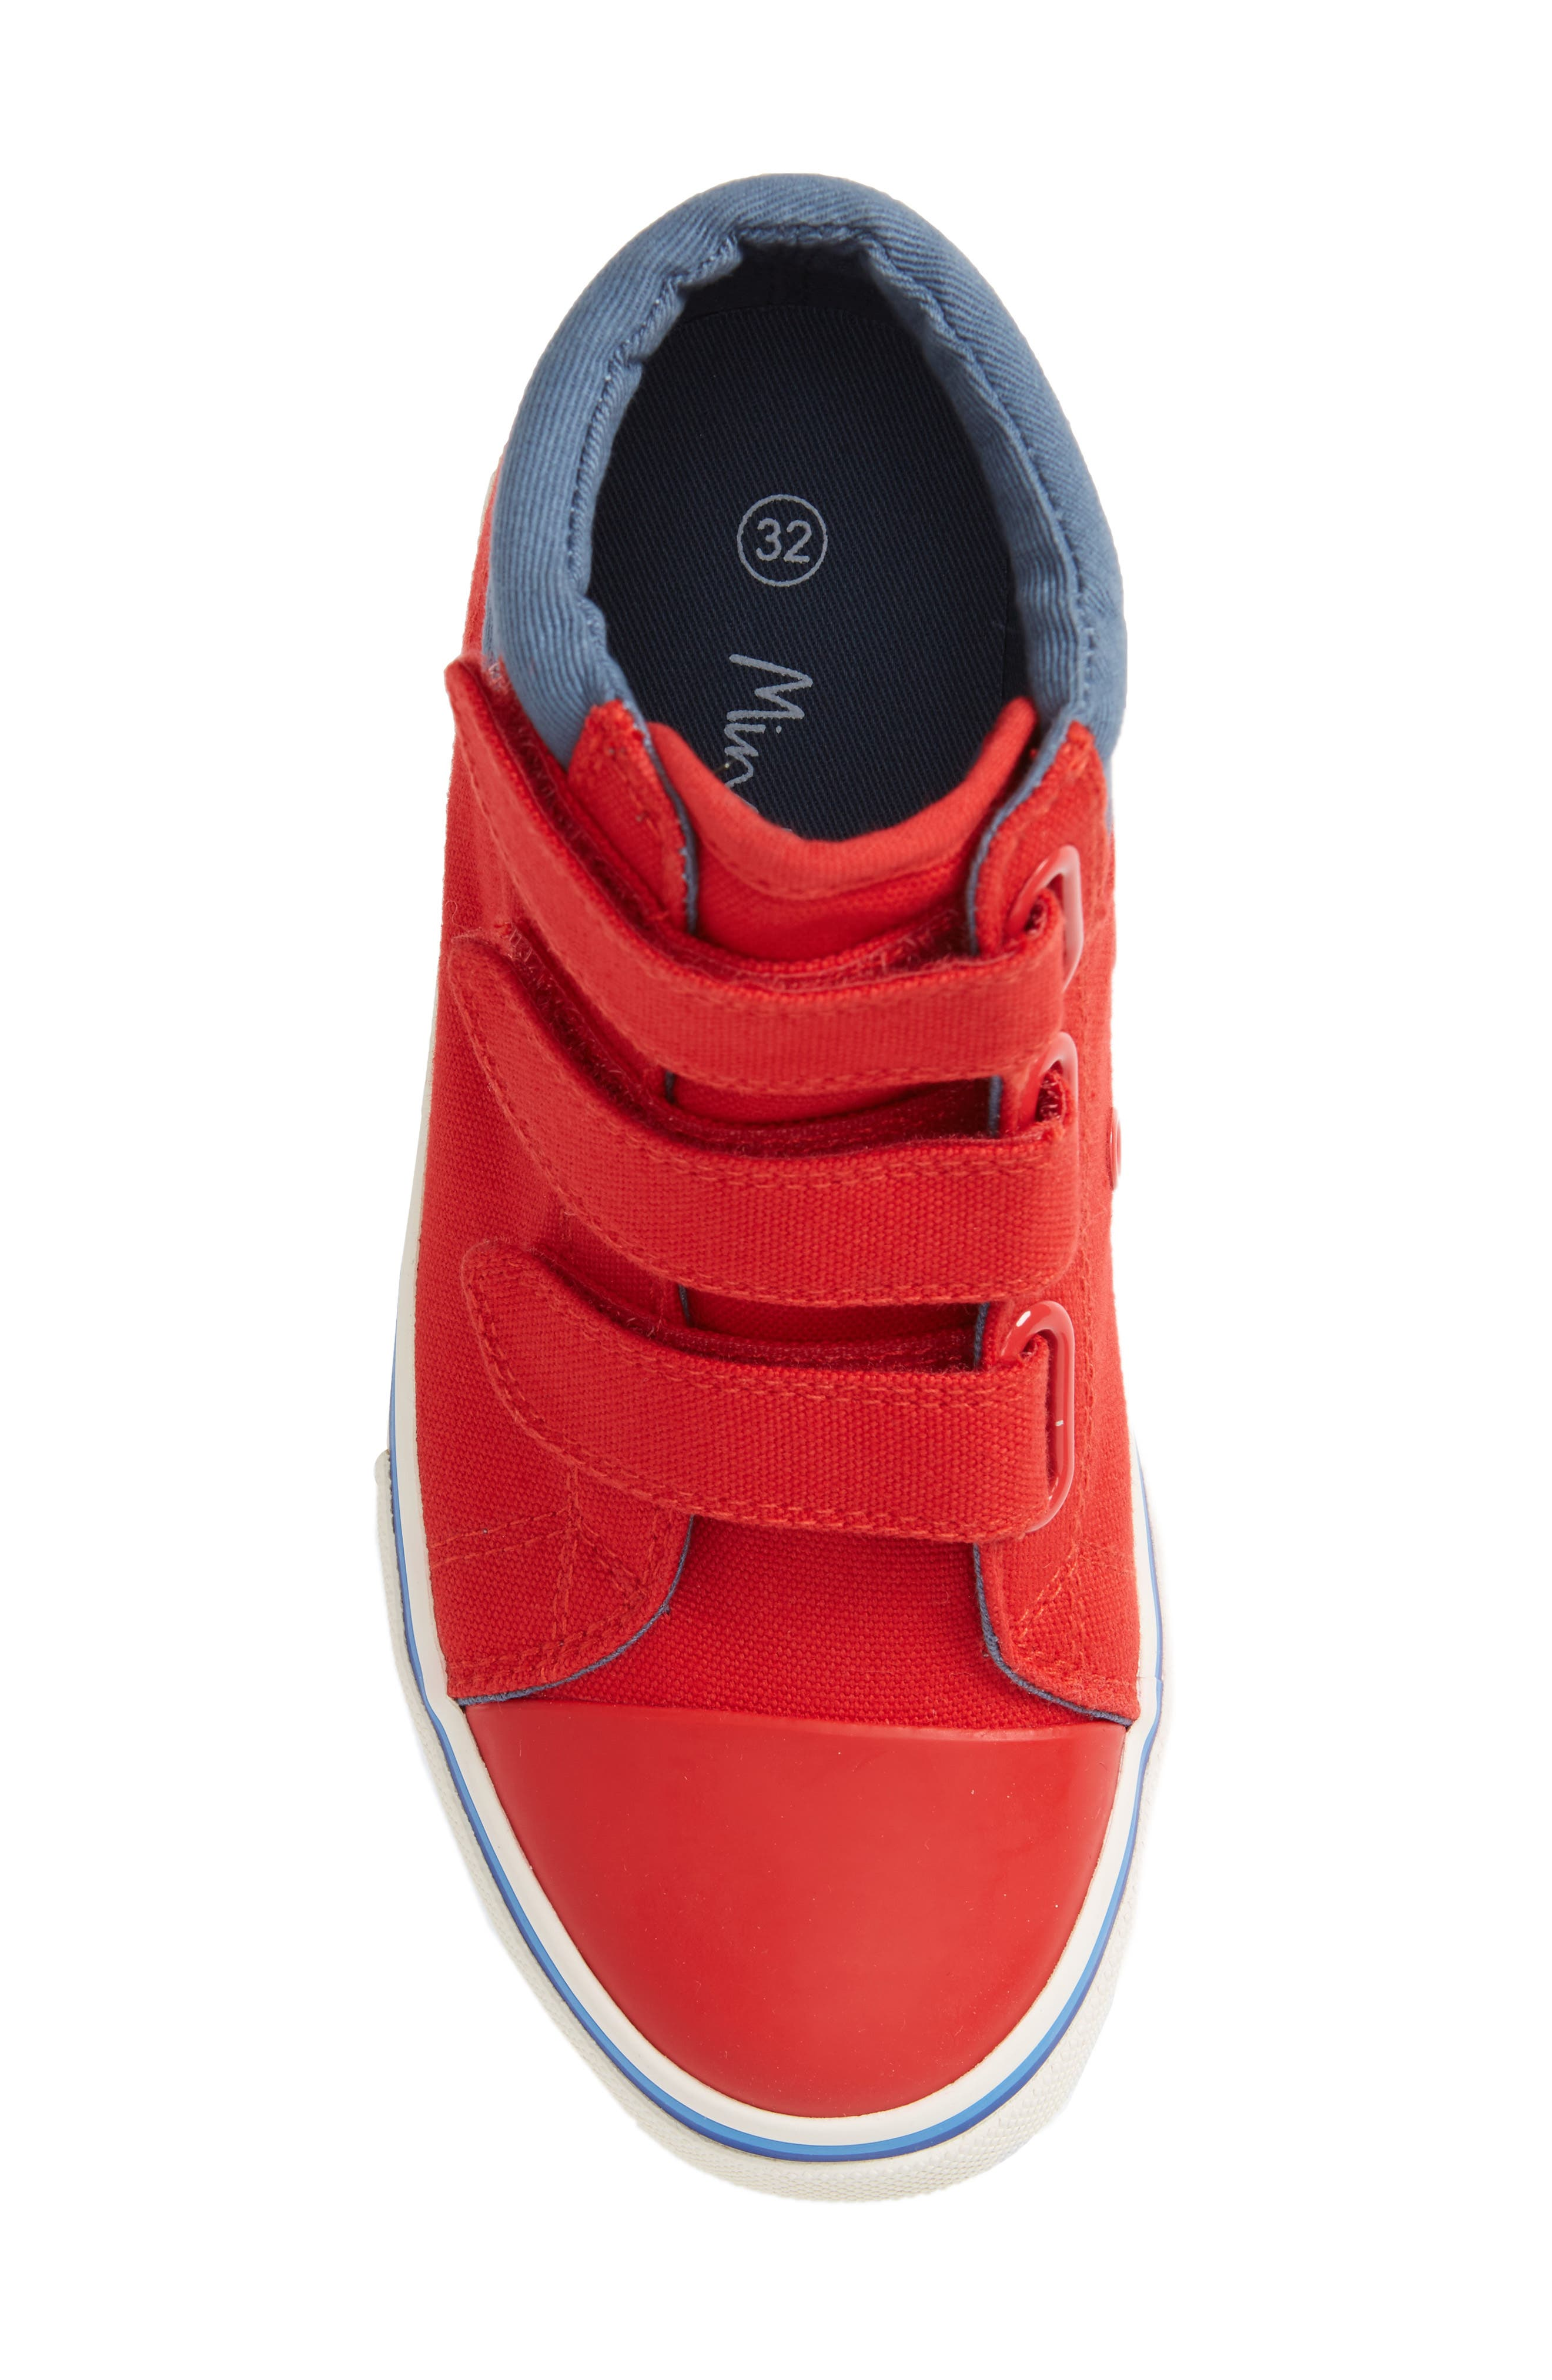 High Top Sneaker,                             Alternate thumbnail 5, color,                             Salsa Red